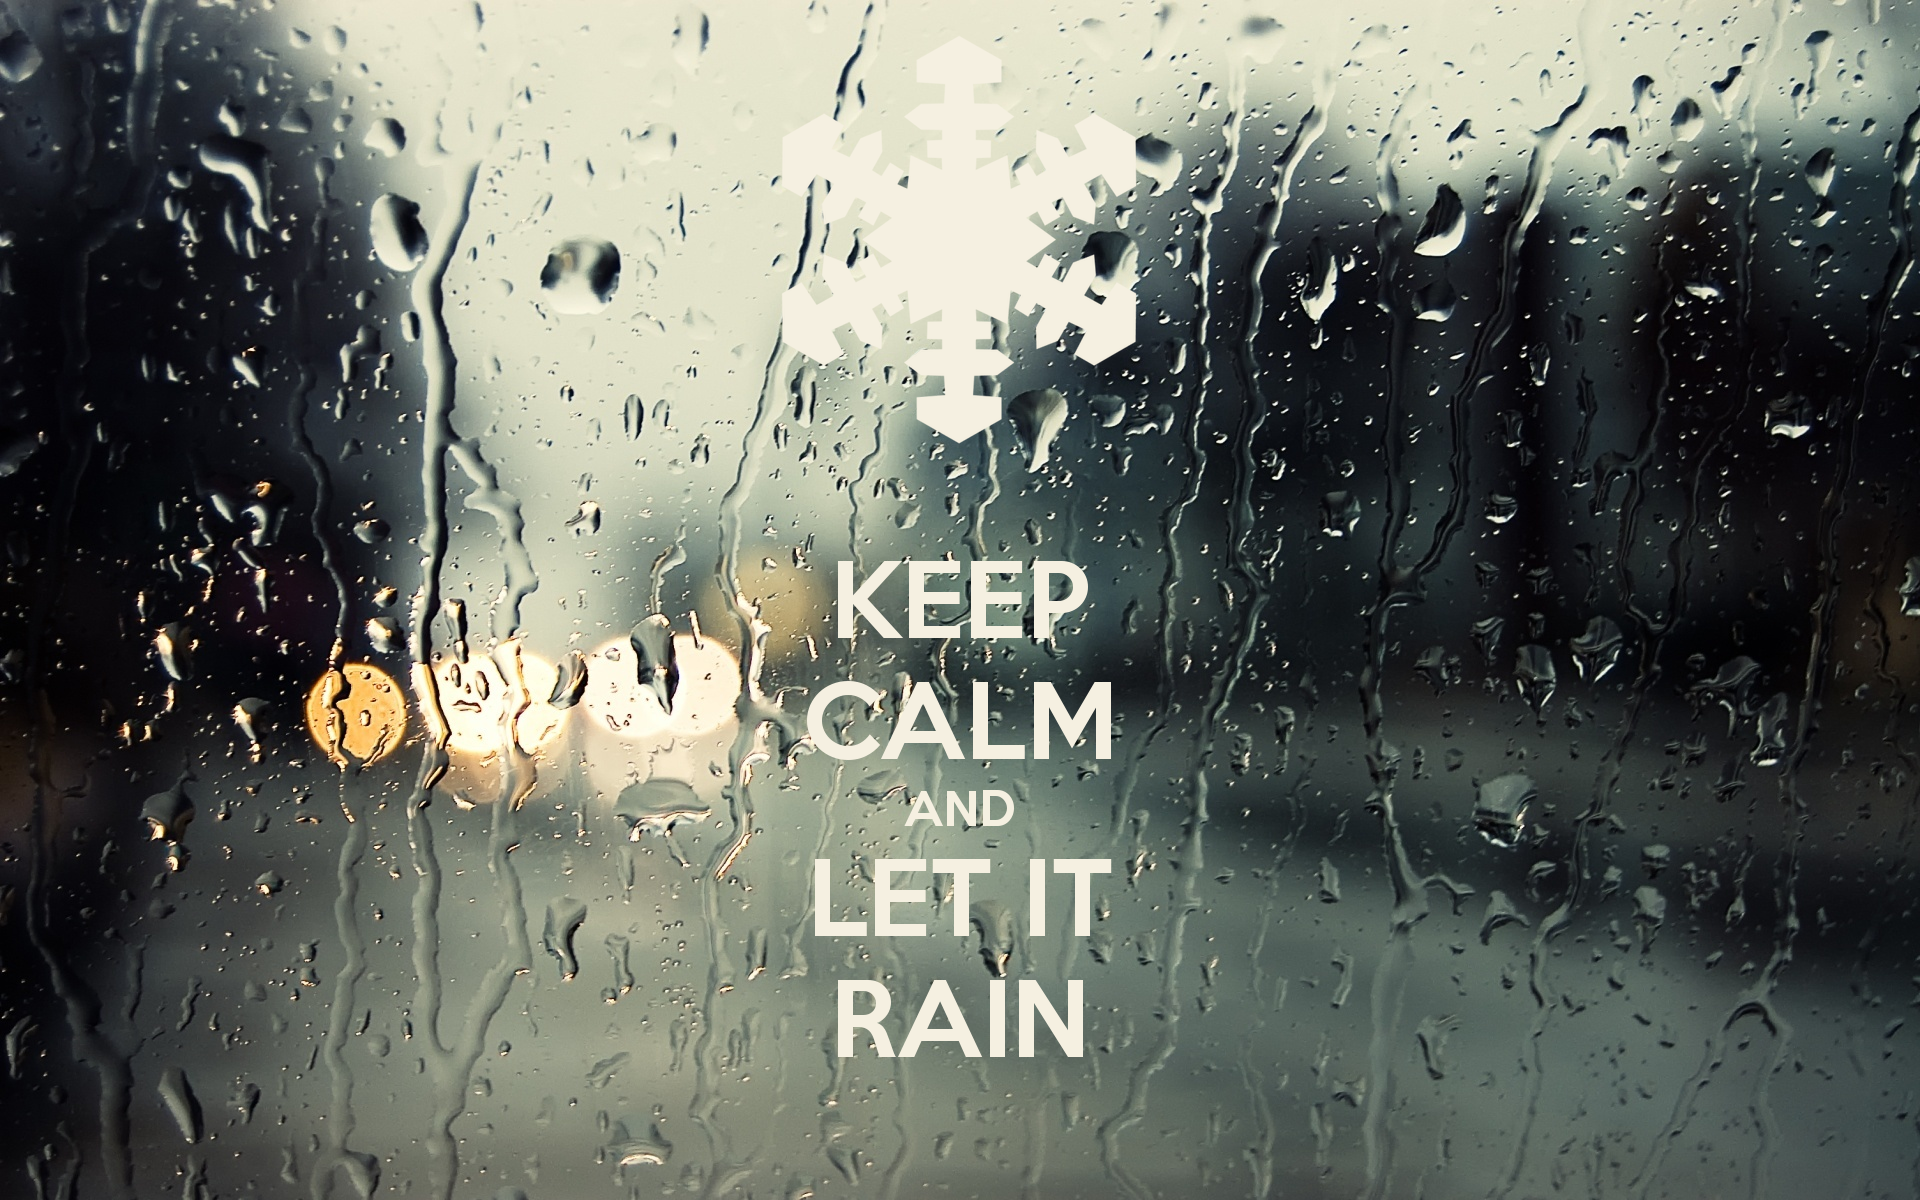 https://loopassets.s3.amazonaws.com/thumbnails/image/keep-calm-and-let-it-rain-24.png